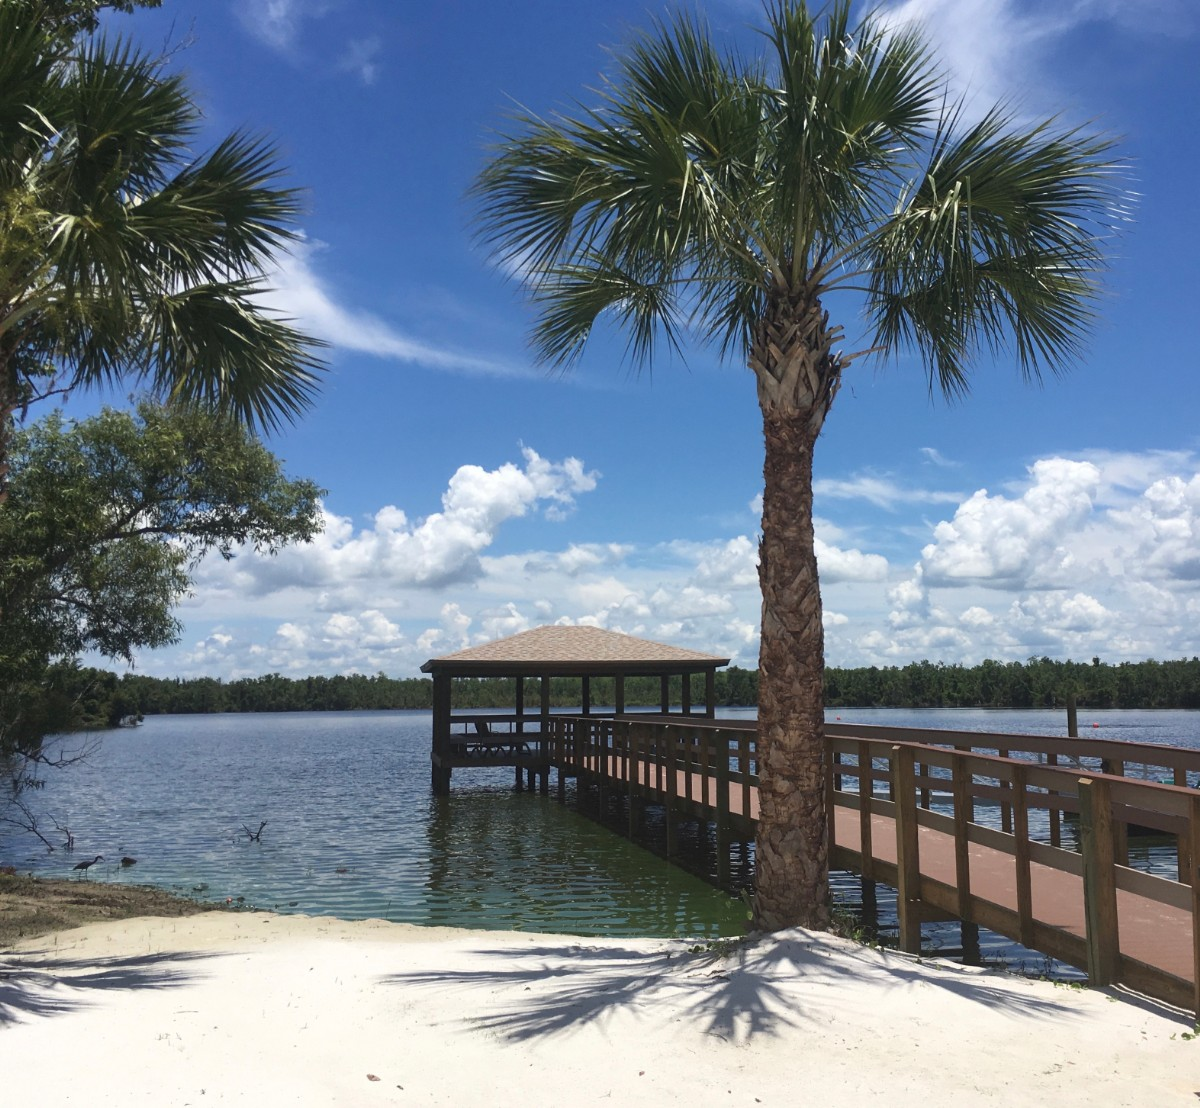 Relax at the Lakefront - Picture of Cypress Cove Nudist